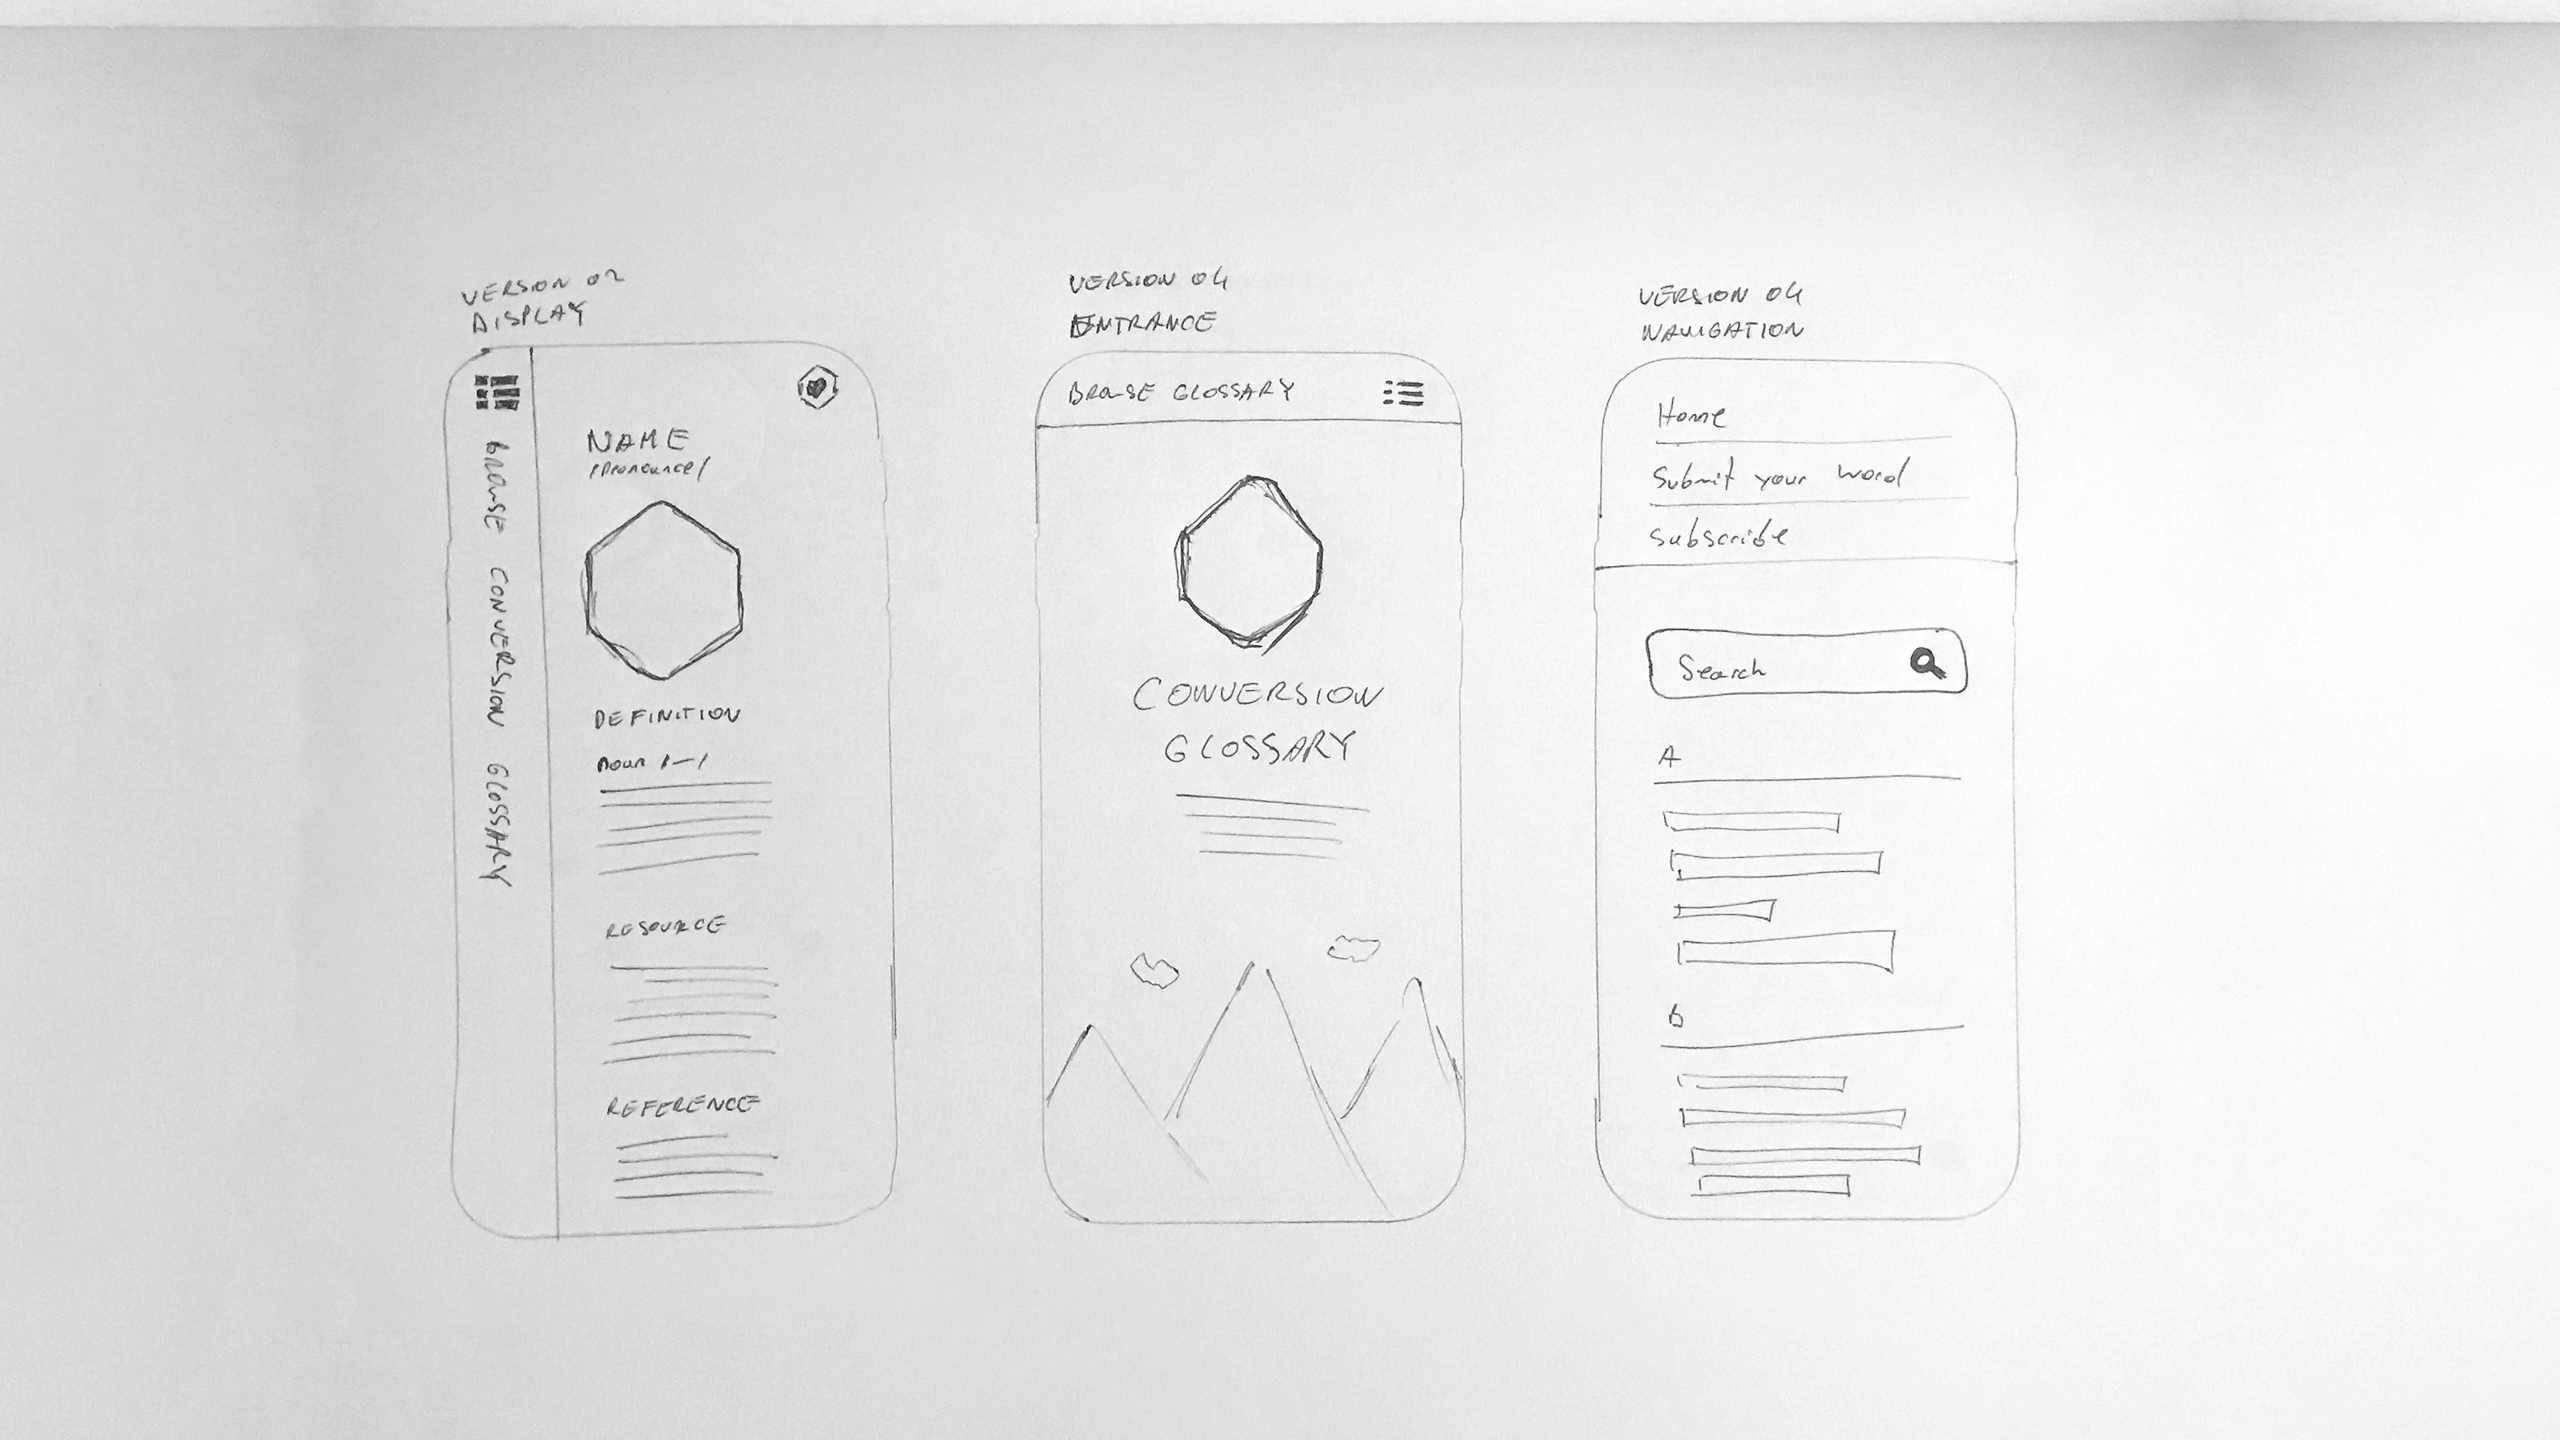 conversion-glossary-wireframe-sketches-02